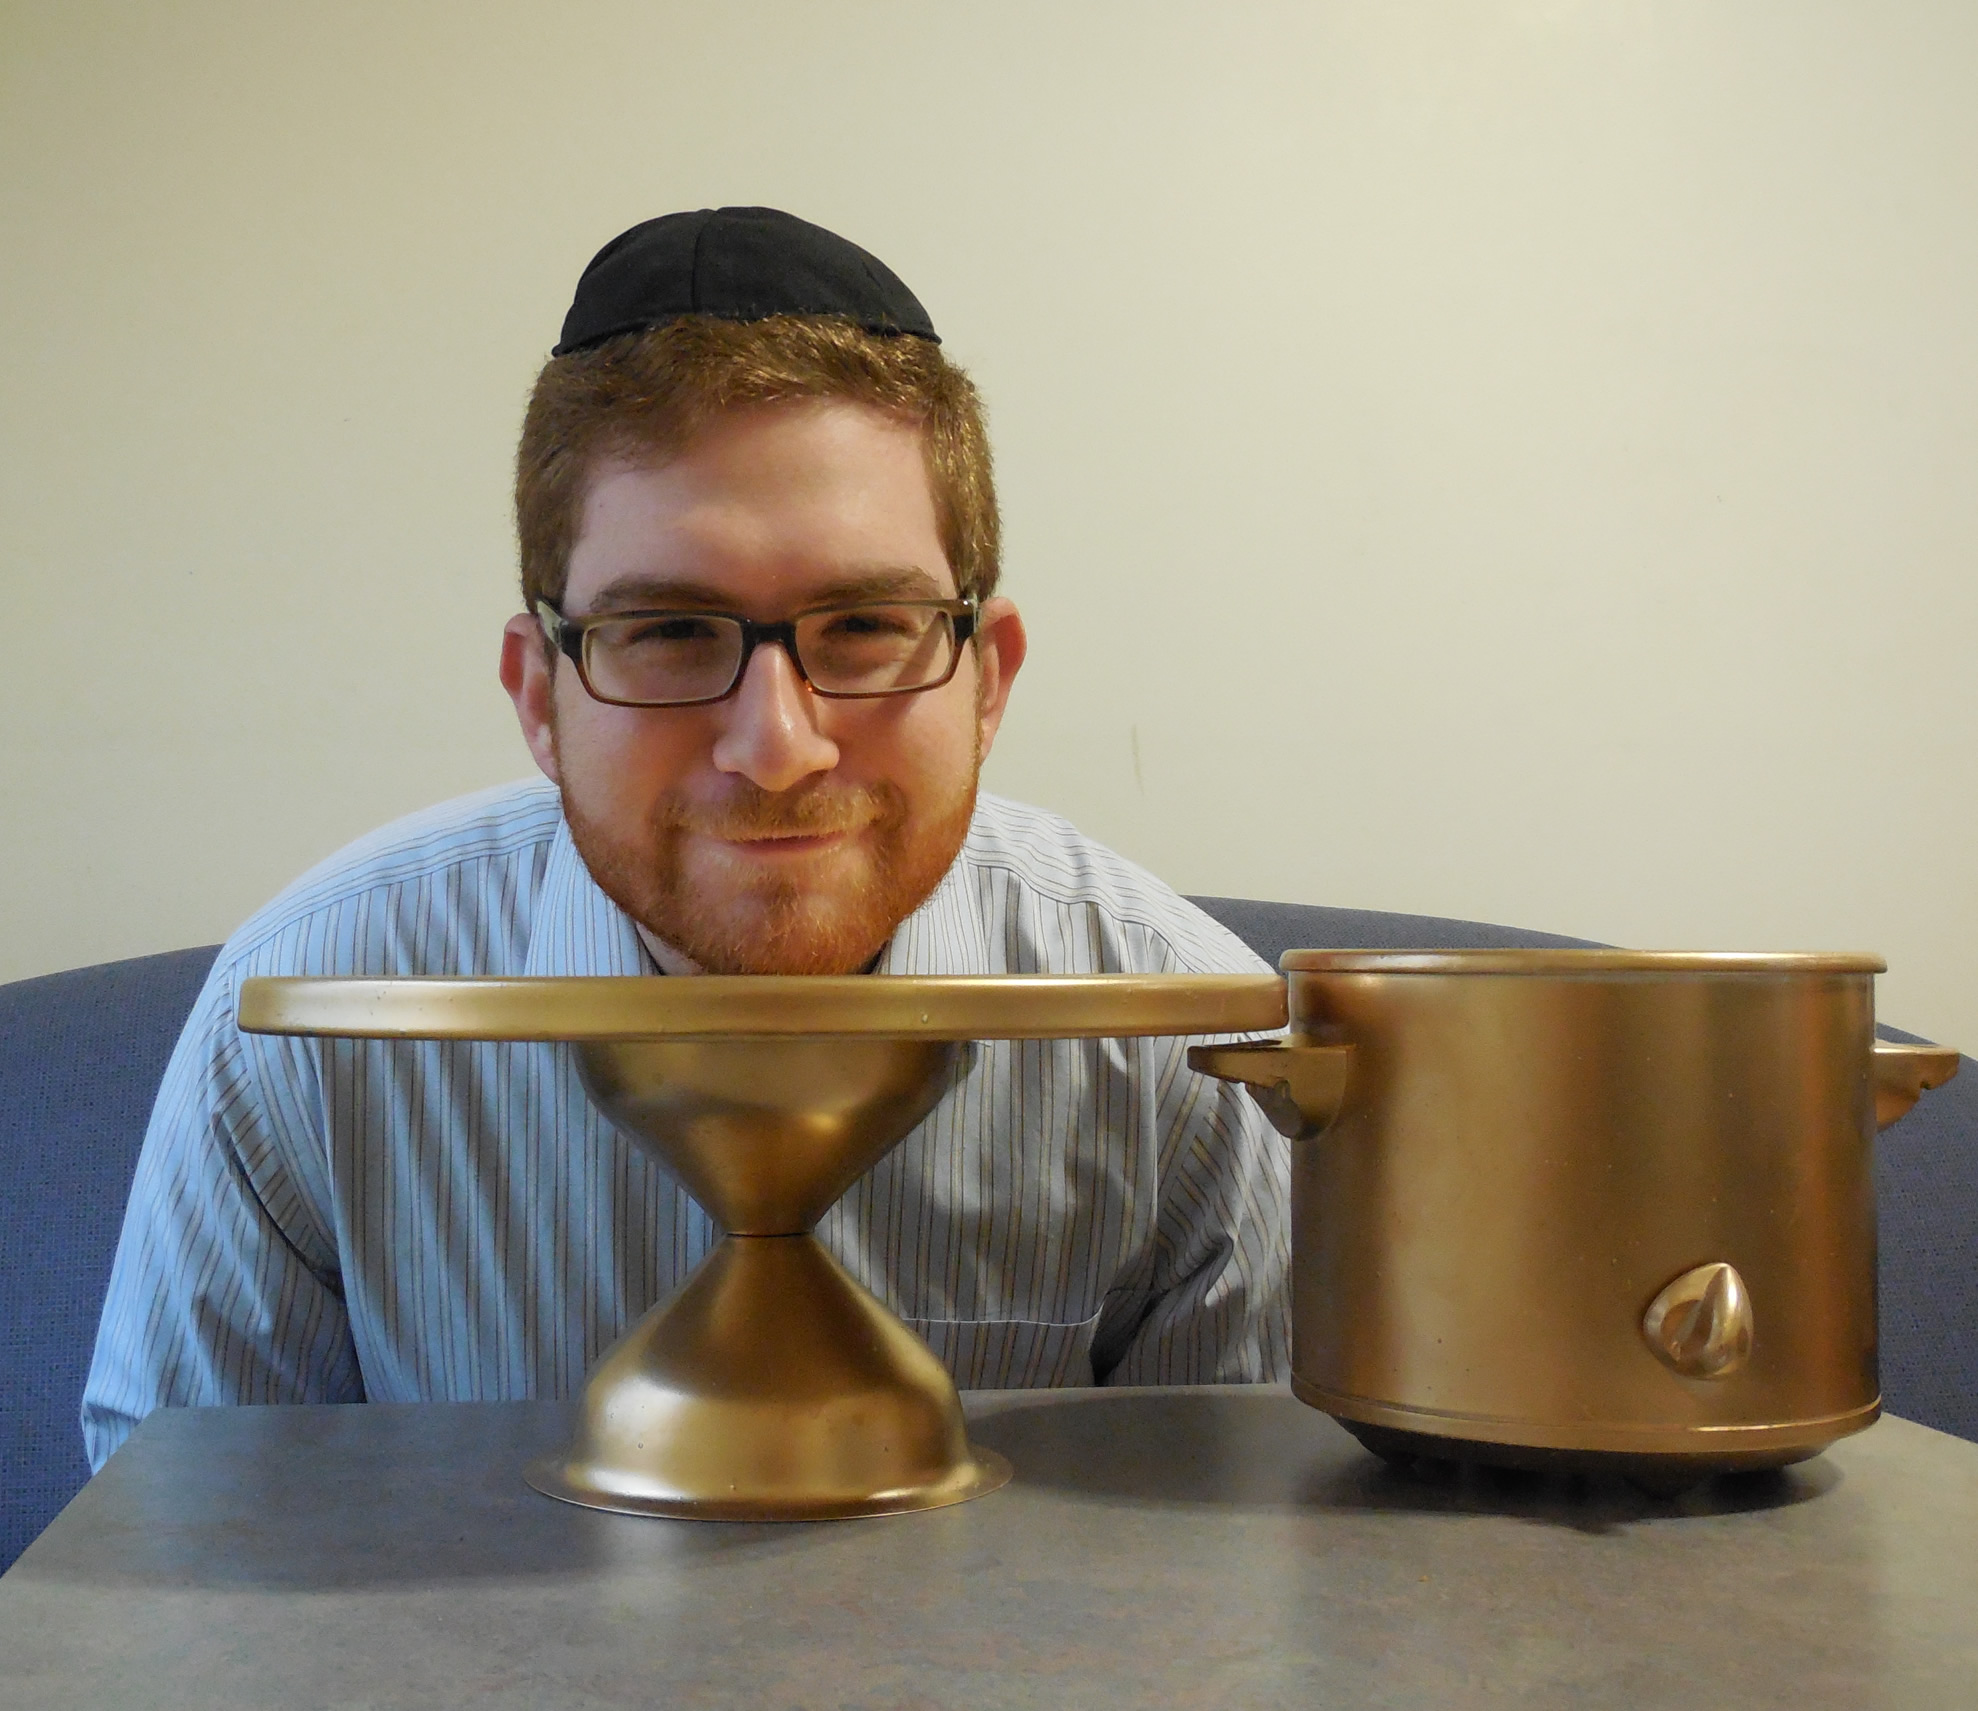 Avrumi Weiser, People's Choice Winner of the 2013 Cholent Cook-off and Bake-off, with his